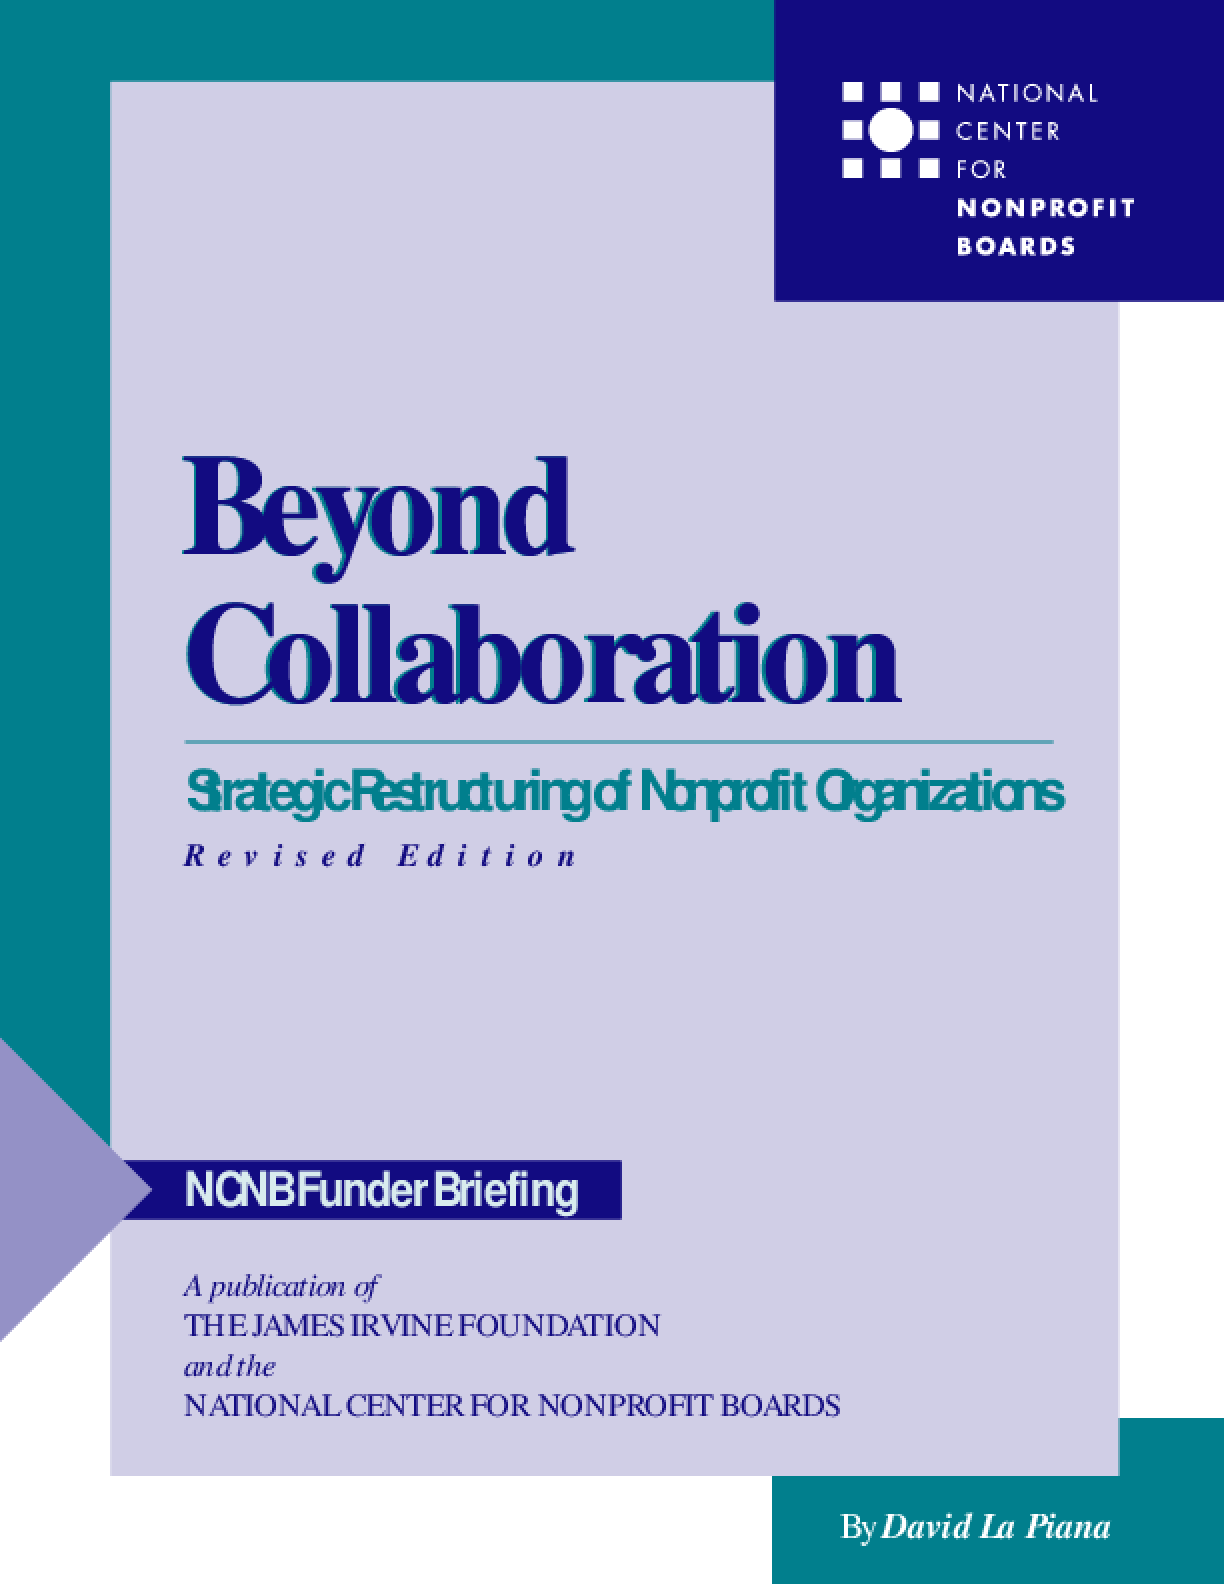 Beyond Collaboration: Strategic Restructuring for Nonprofit Organizations